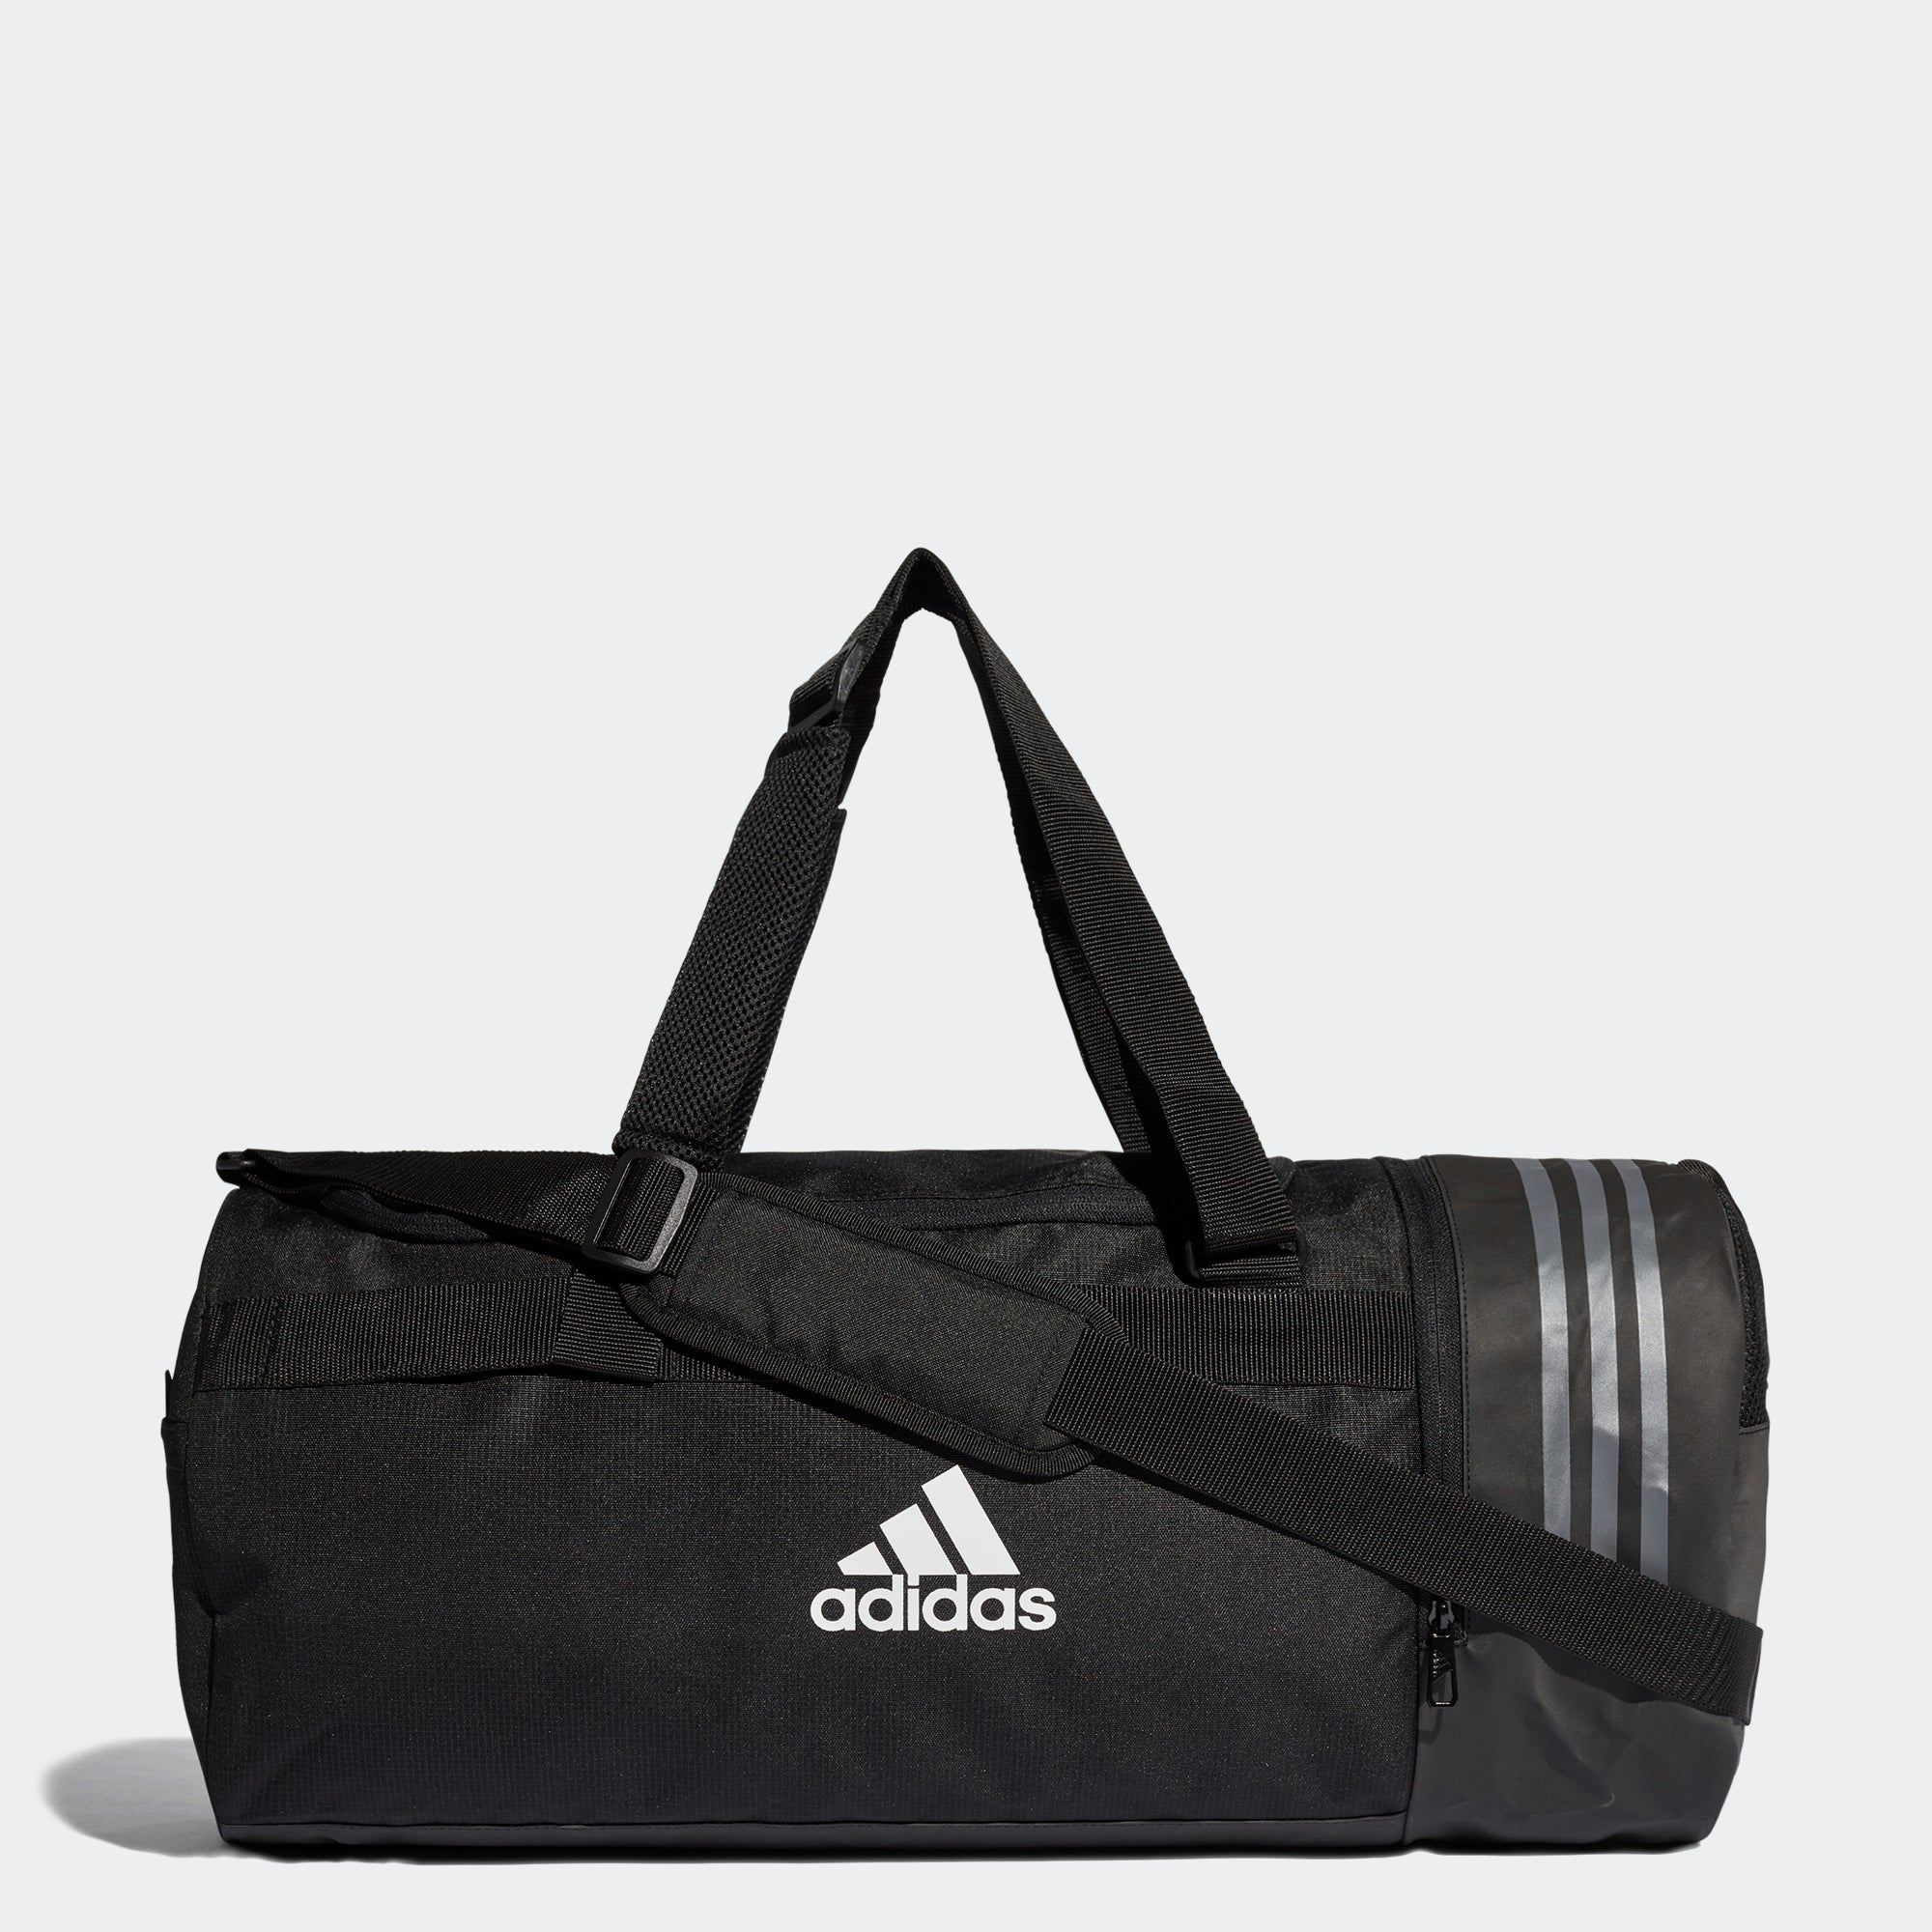 1bb32963f2b Buy adidas Convertible 3-Stripes Duffel Bag Online in Singapore | Royal  Sporting House